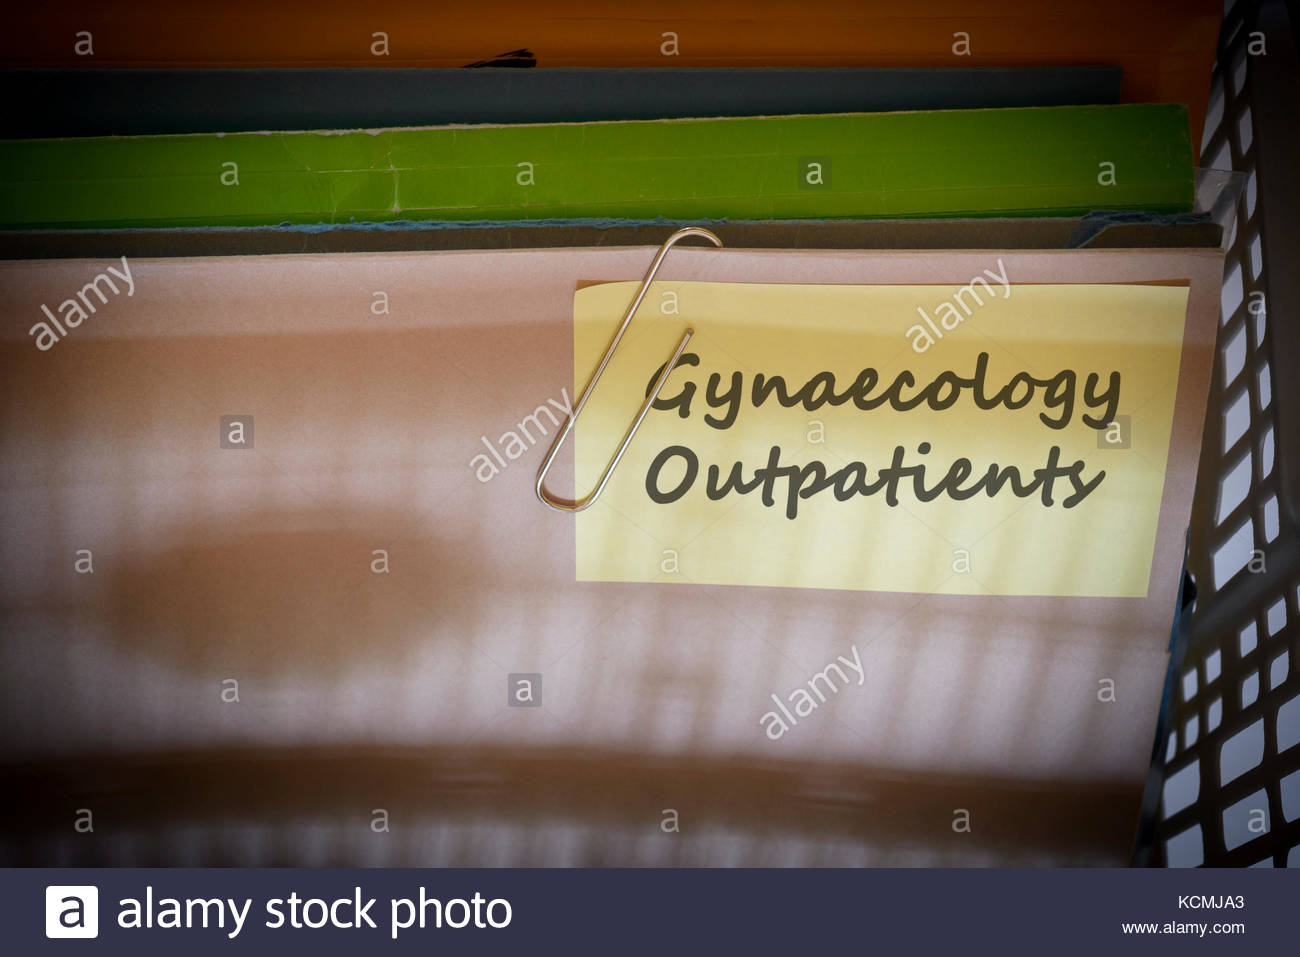 Gynaecology Outpatients written on document folder, Dorset, England. - Stock Image